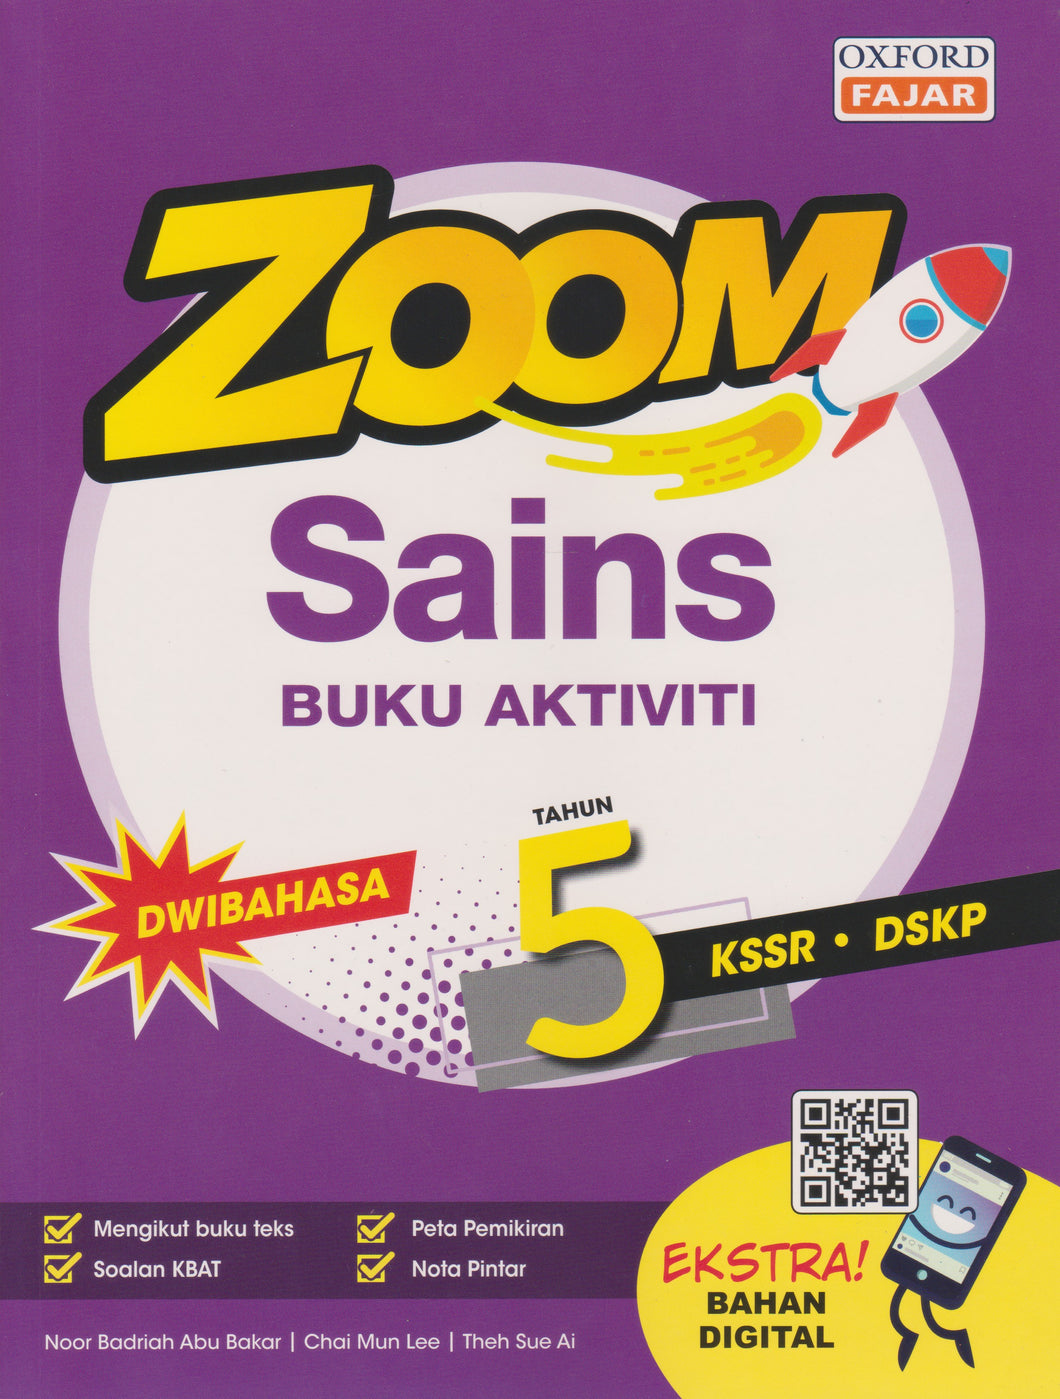 OxfordFajar: Zoom Sains / Science Dwibahasa Tahun / Year 5